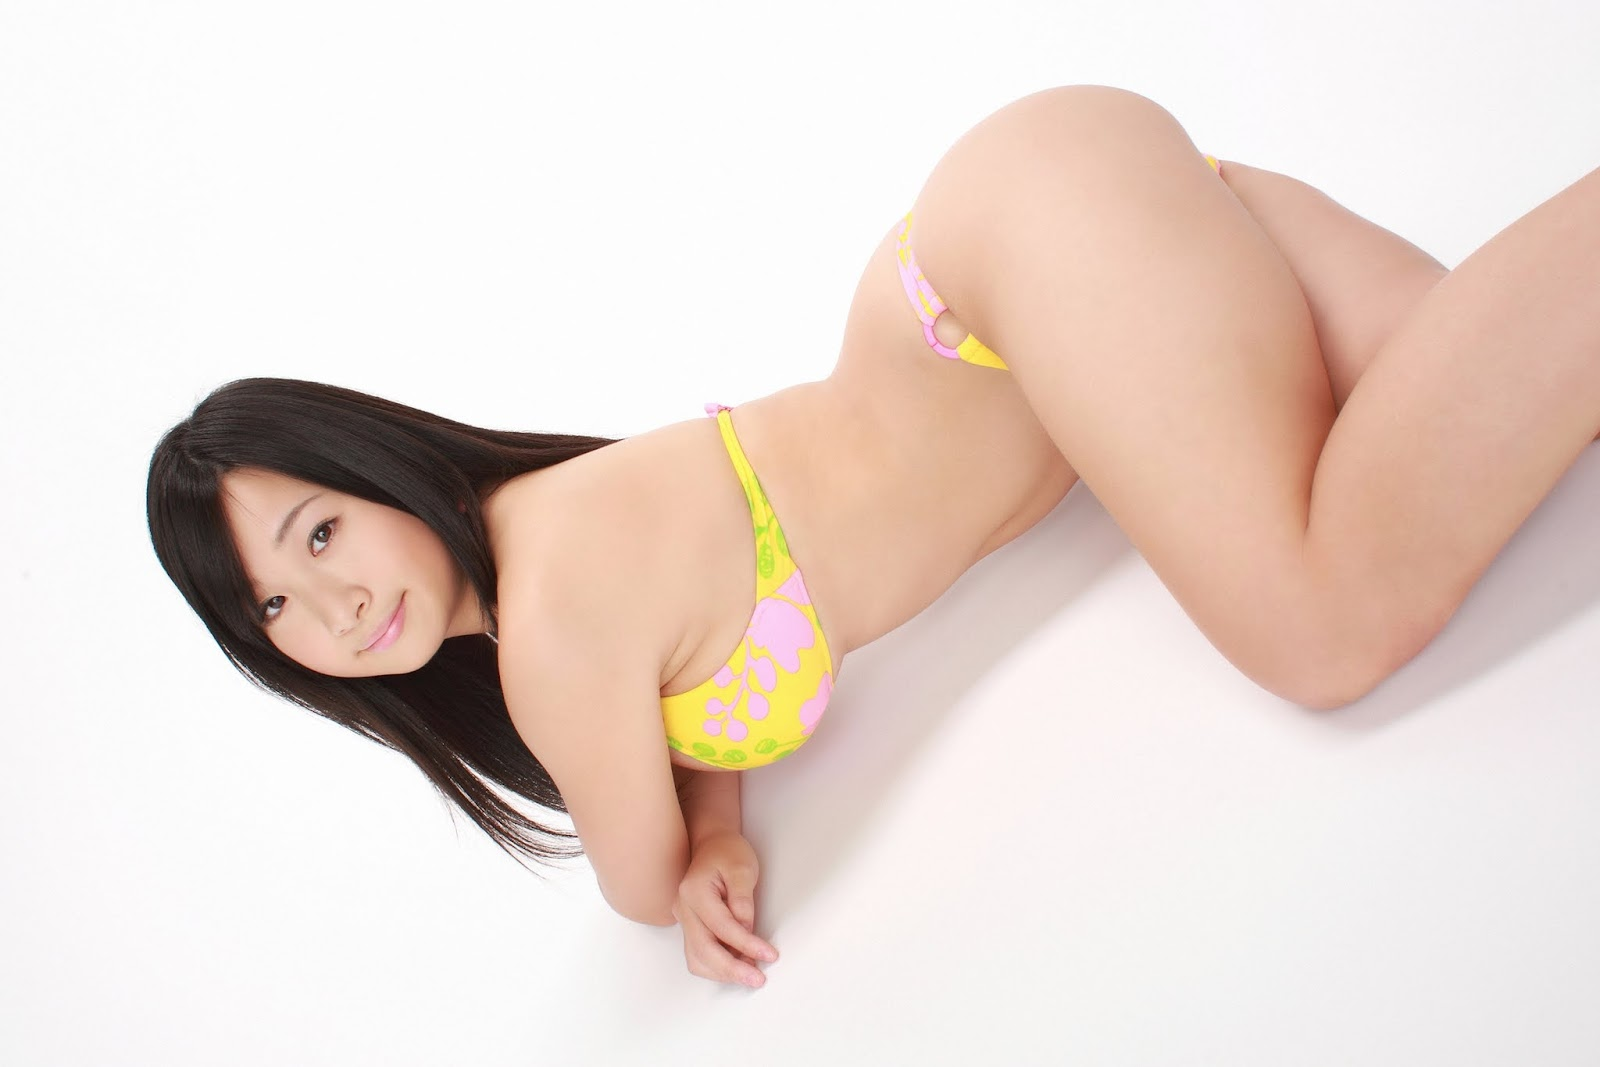 Beautifull Photos: Rui Kiriyama sexy in yelow Bikini